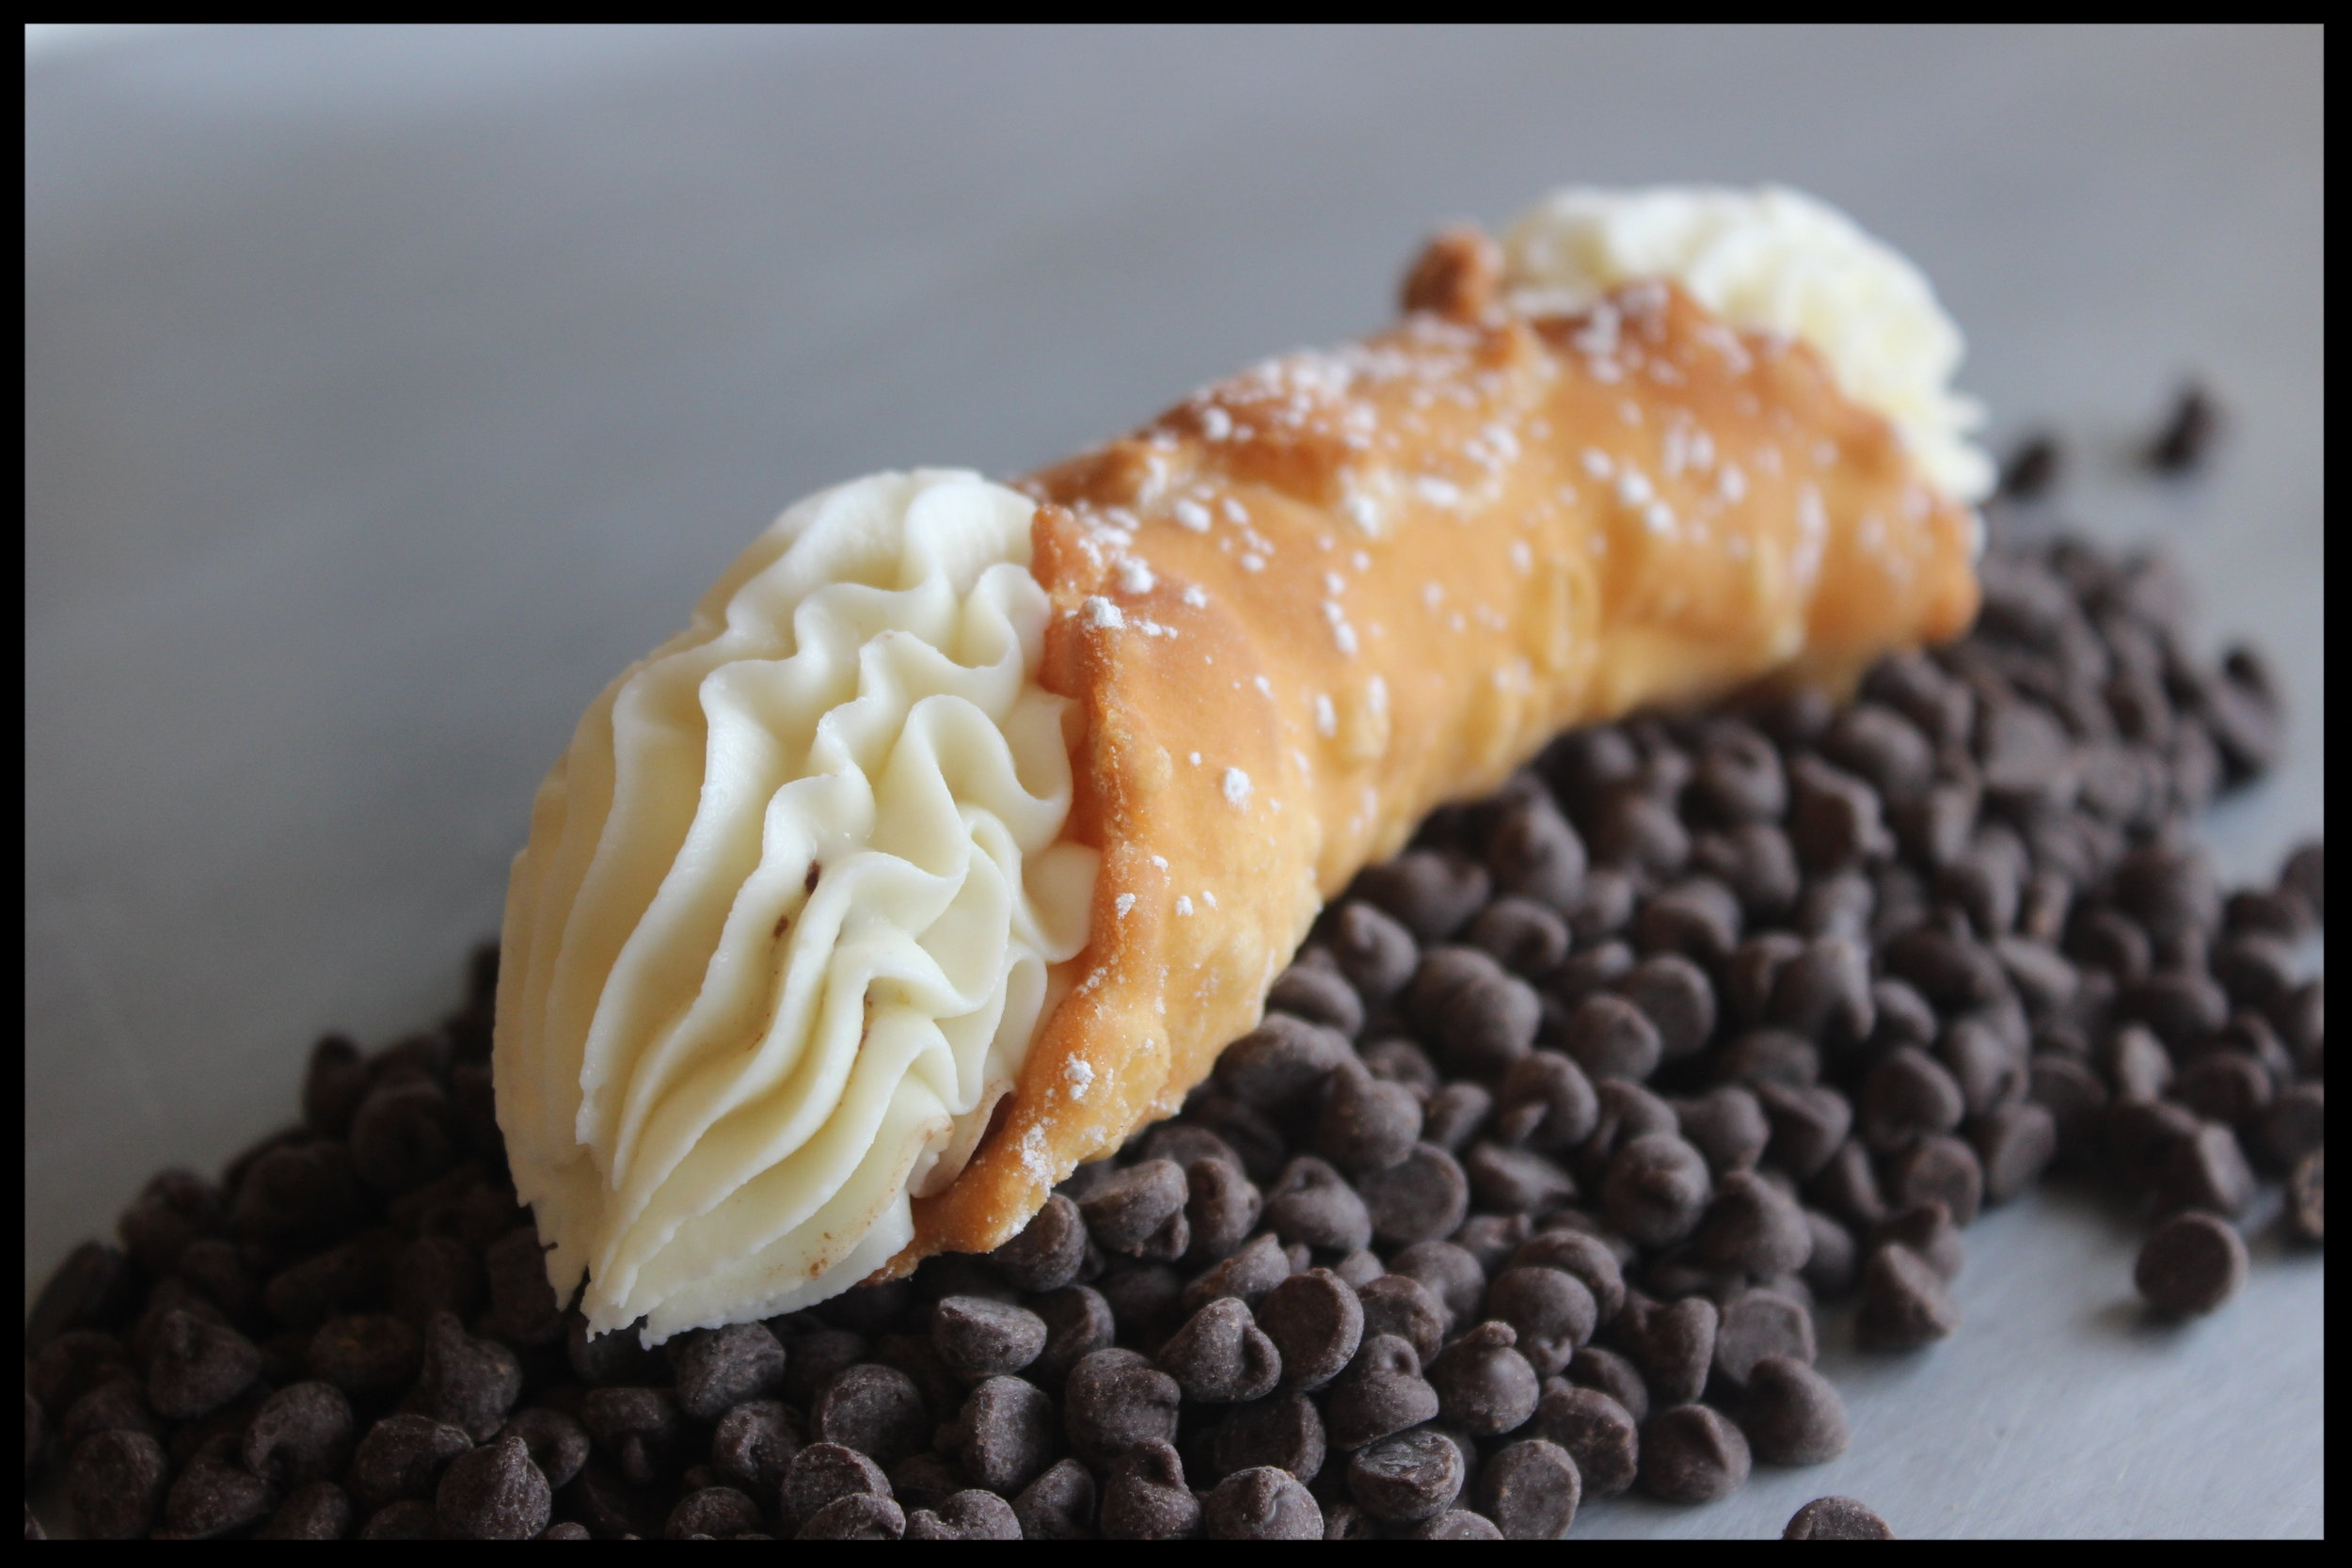 Cannoli - Fried Cannoli shell made in house with sweetened ricotta cheese and chocolate chips.